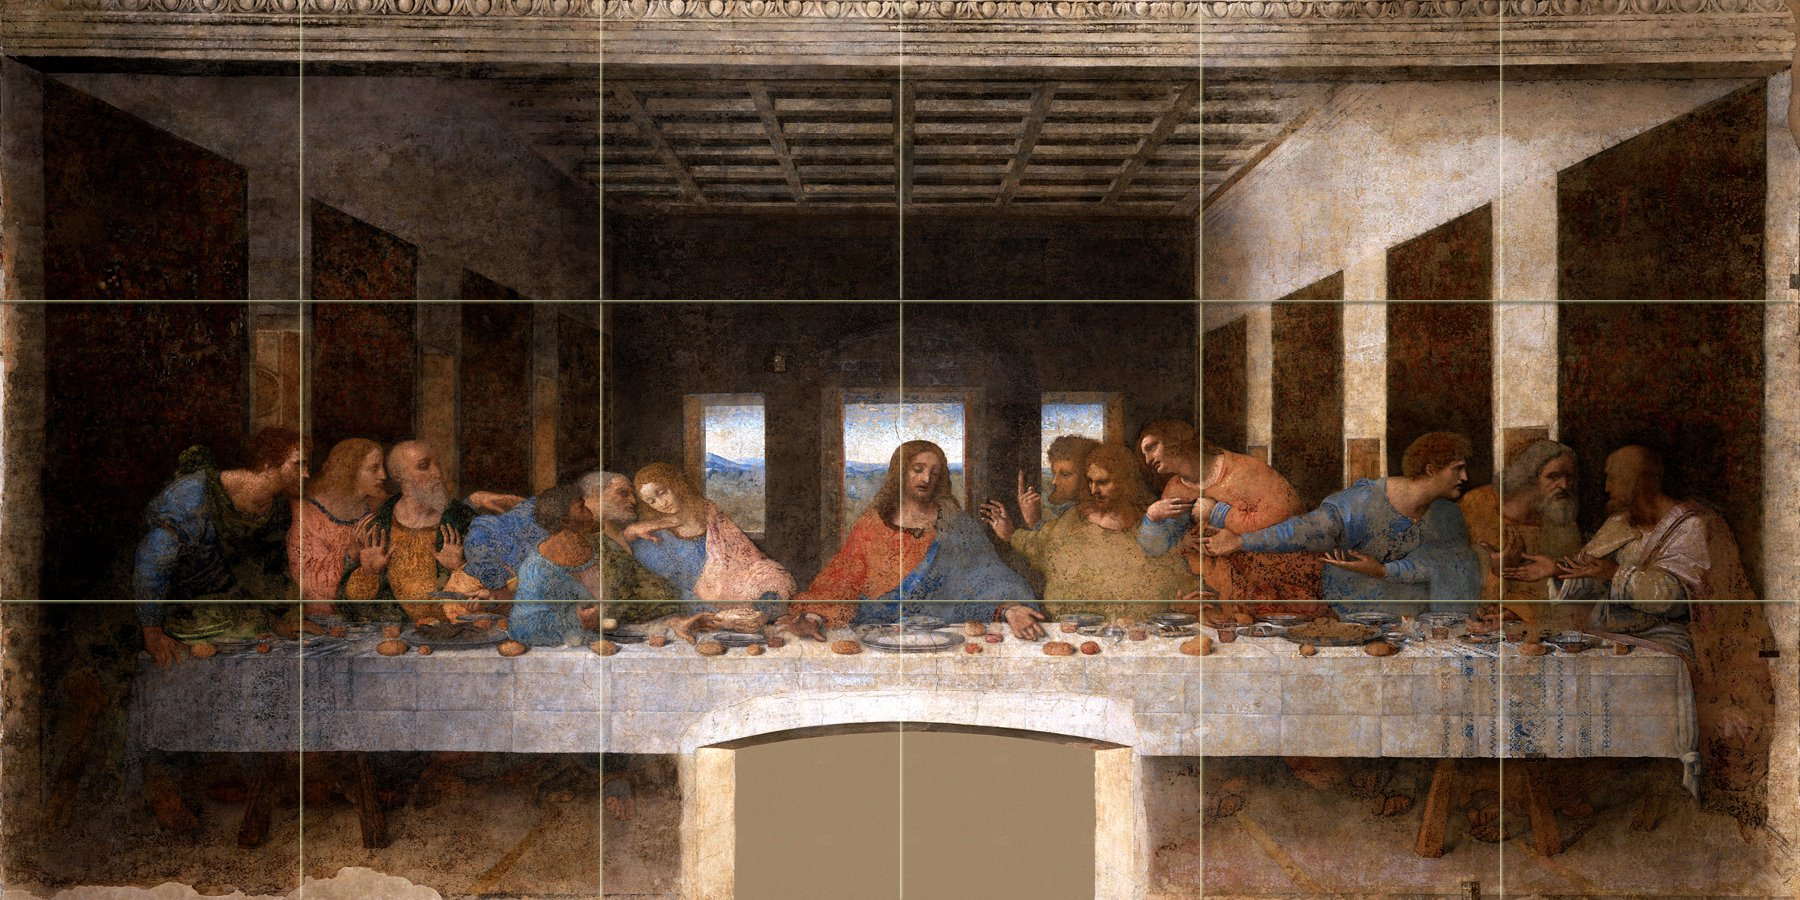 The Last Supper by Leonardo da Vinci Tile Mural Kitchen Bathroom Wall Backsplash Behind Stove Range Sink Splashback 6x3 4.25'' Ceramic, Glossy